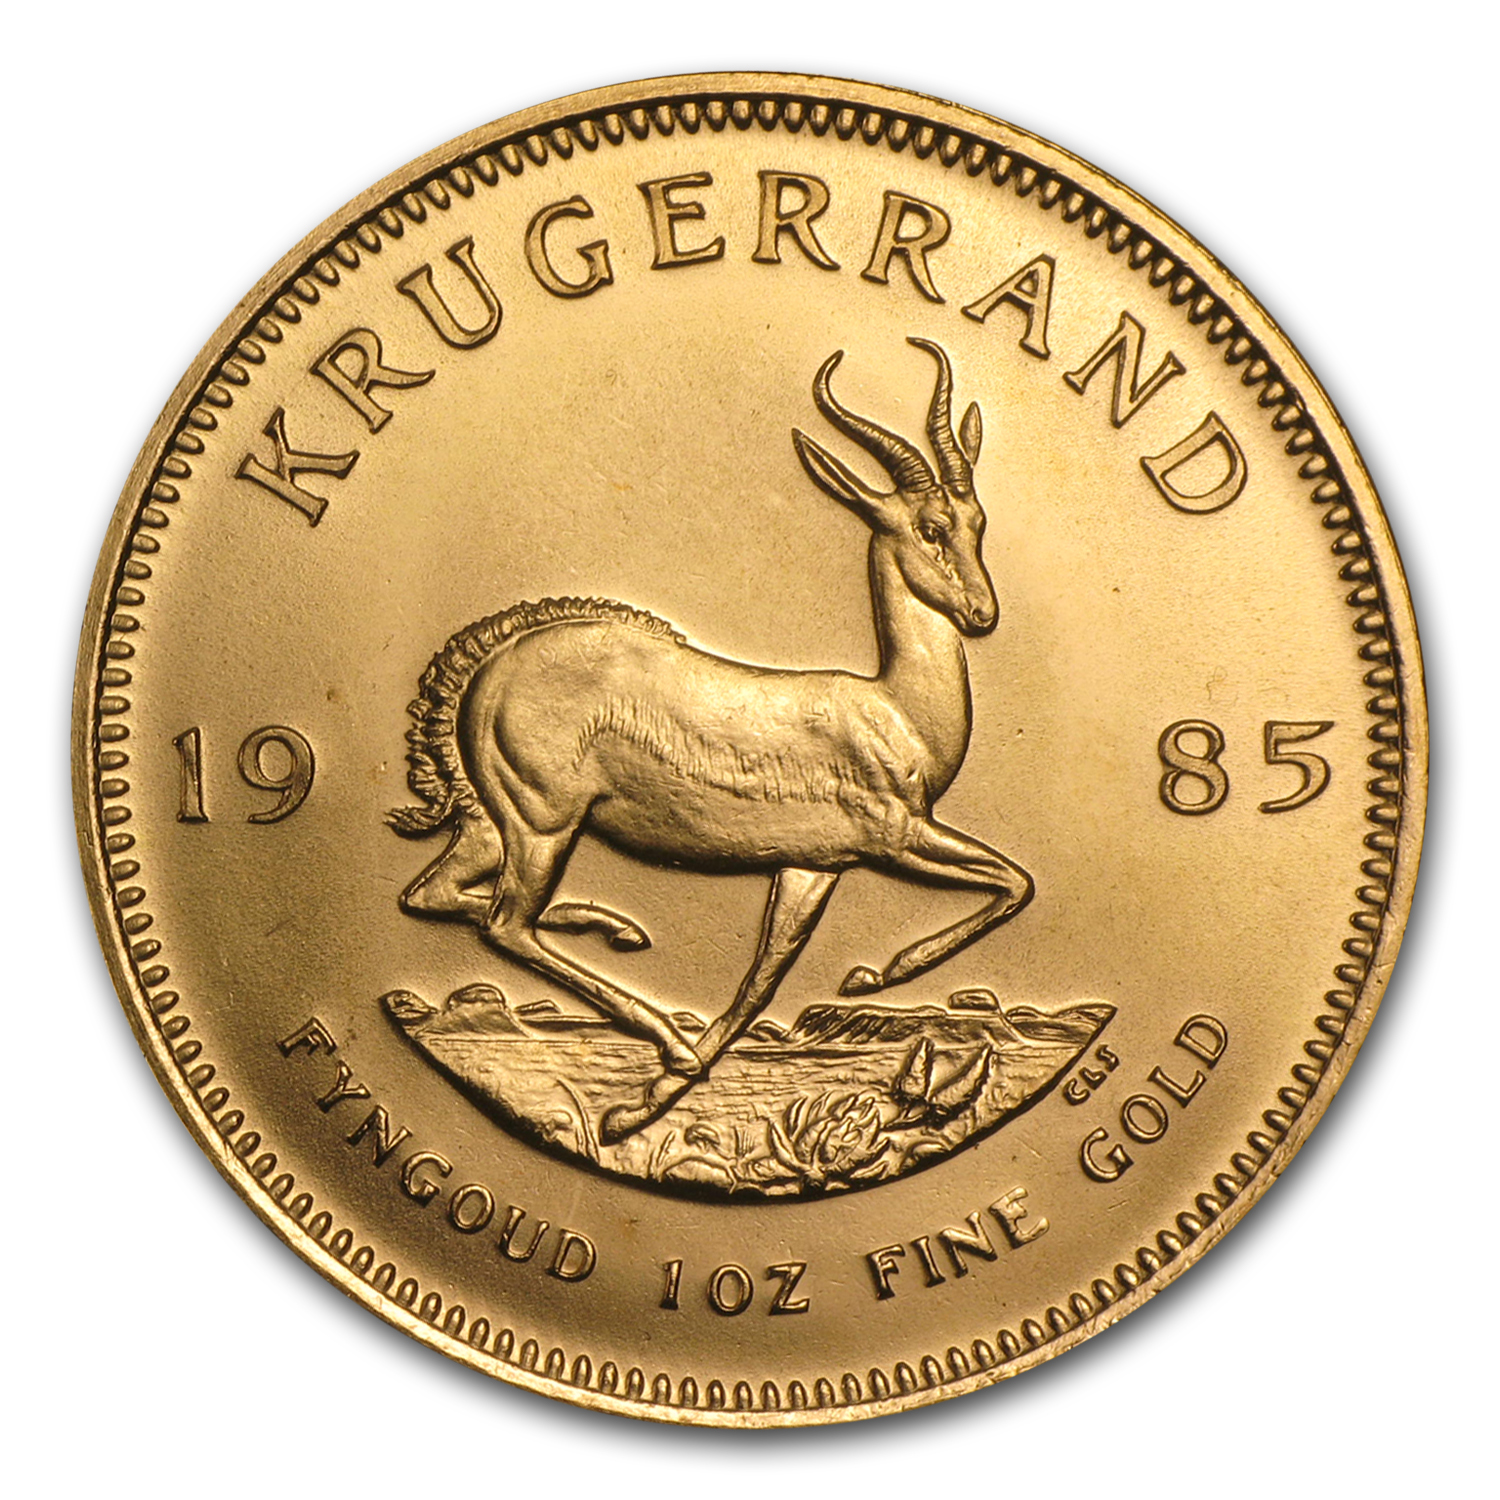 1985 1 oz Gold South African Krugerrand